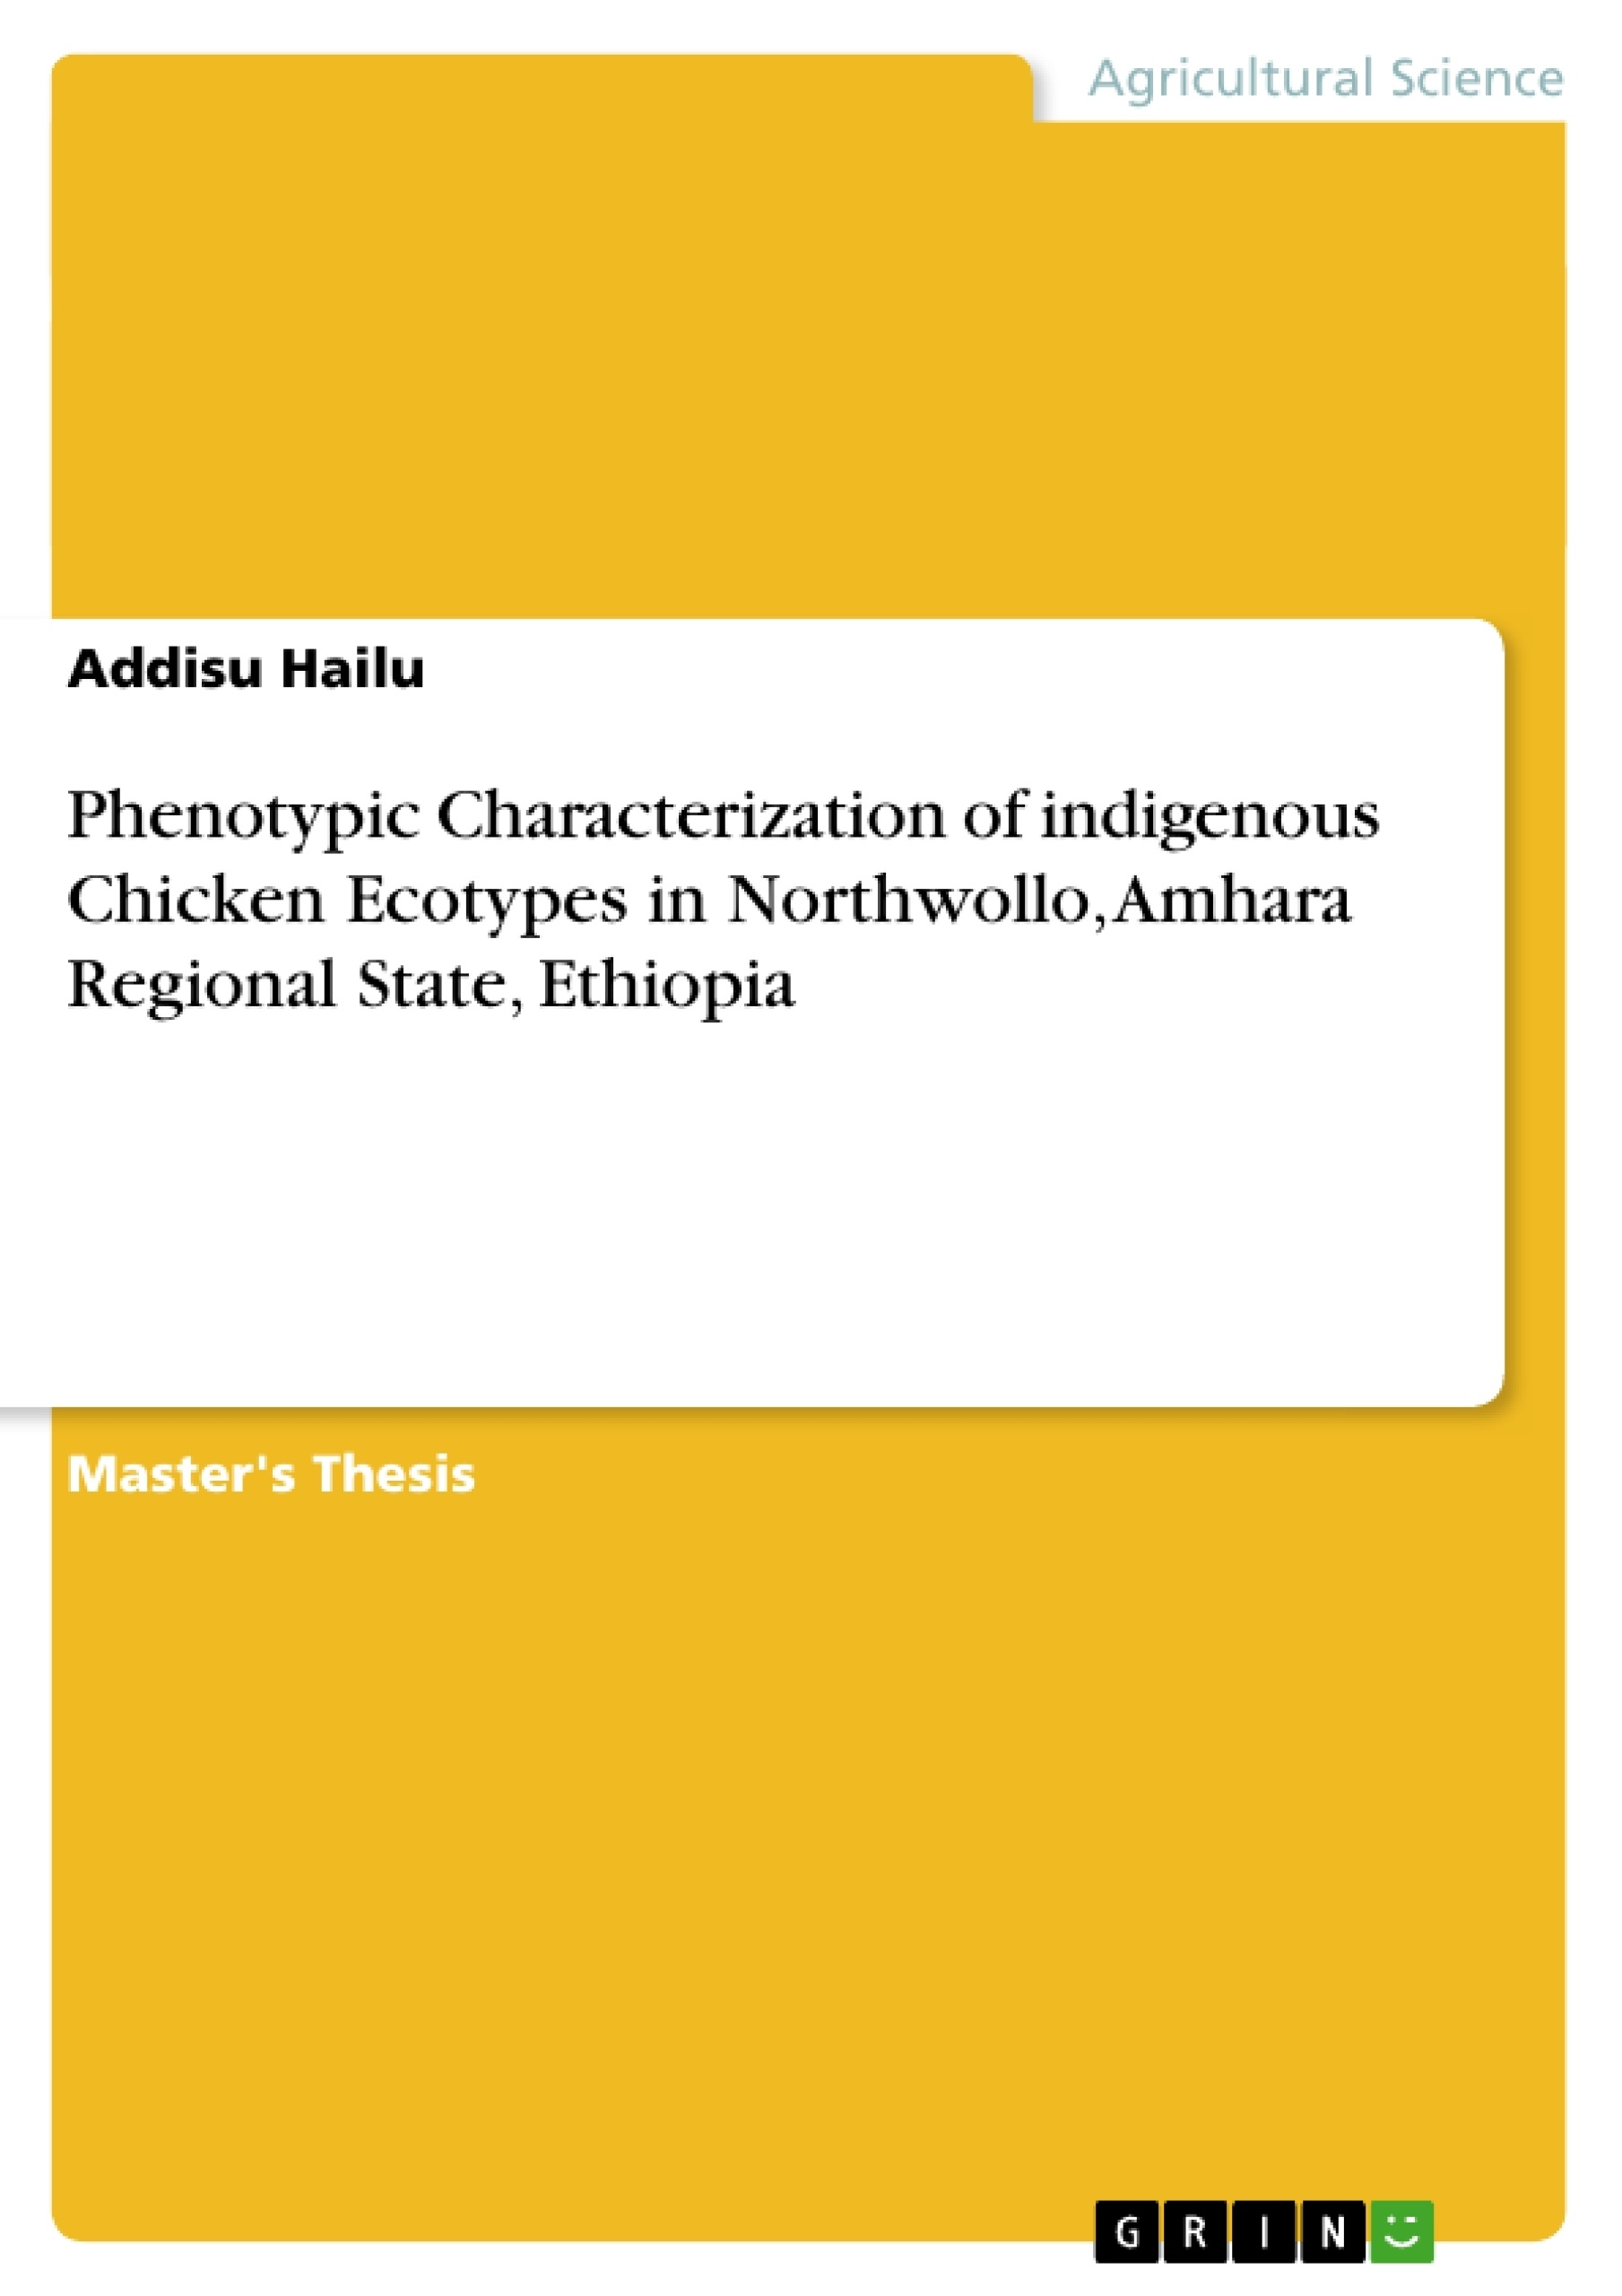 Title: Phenotypic Characterization of indigenous Chicken Ecotypes in Northwollo, Amhara Regional State, Ethiopia